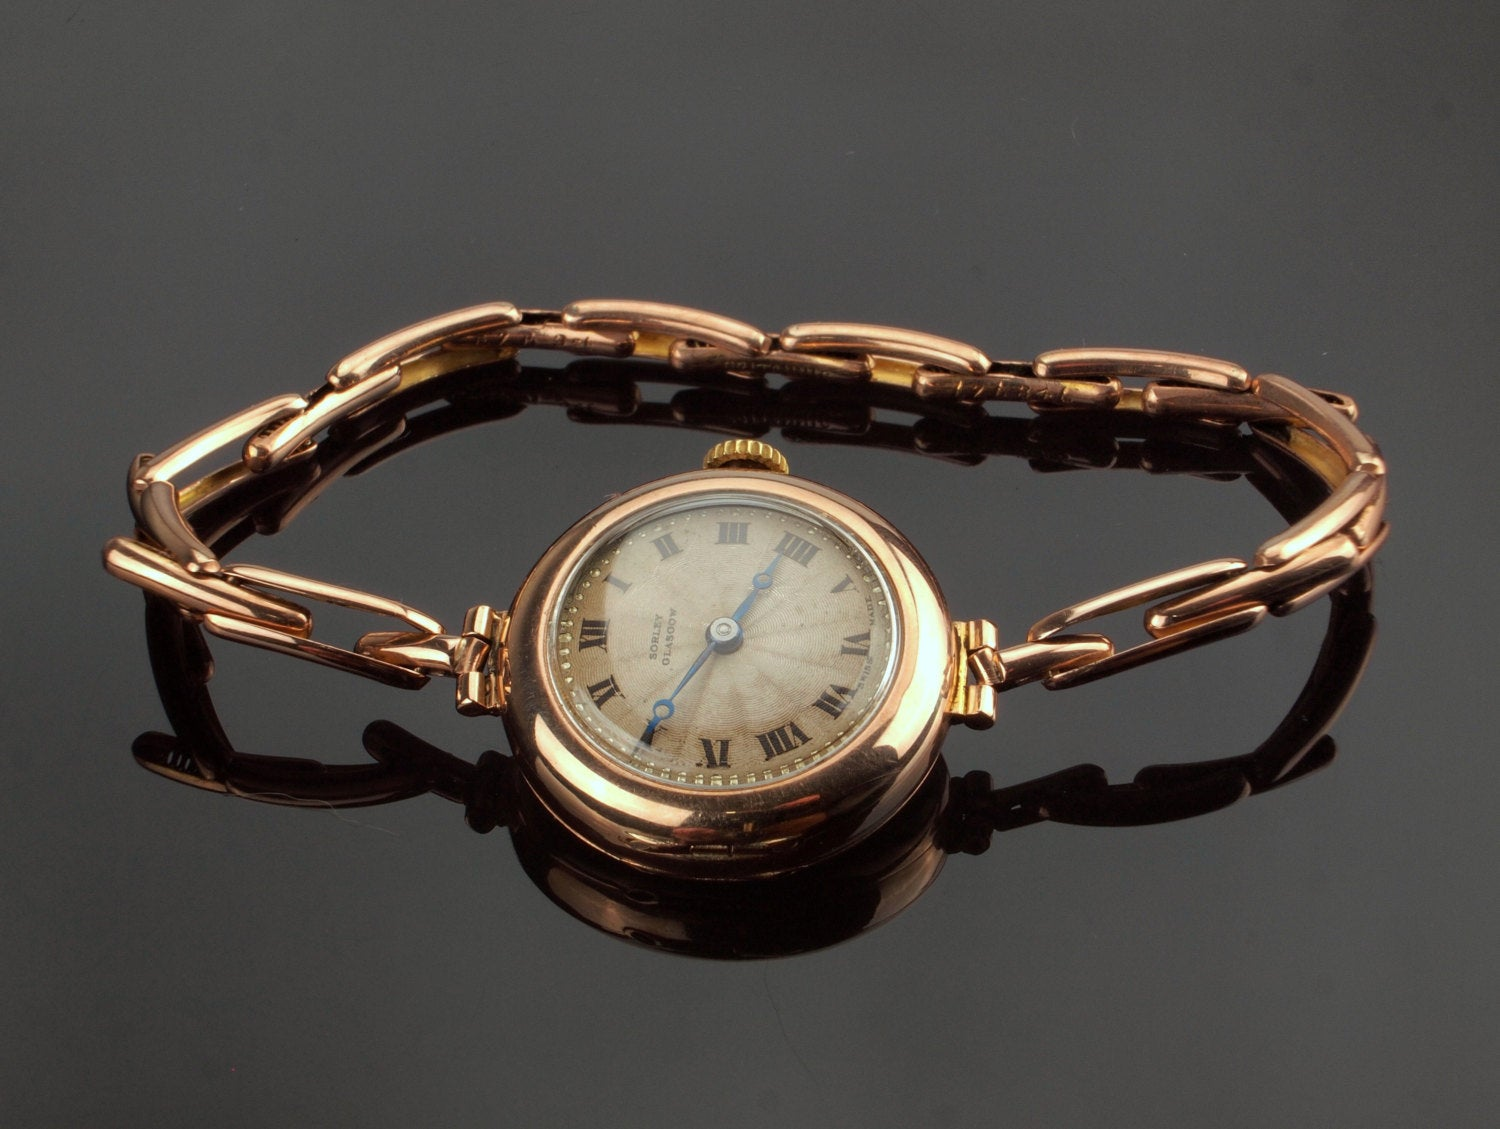 Watch with Britannic Bracelet